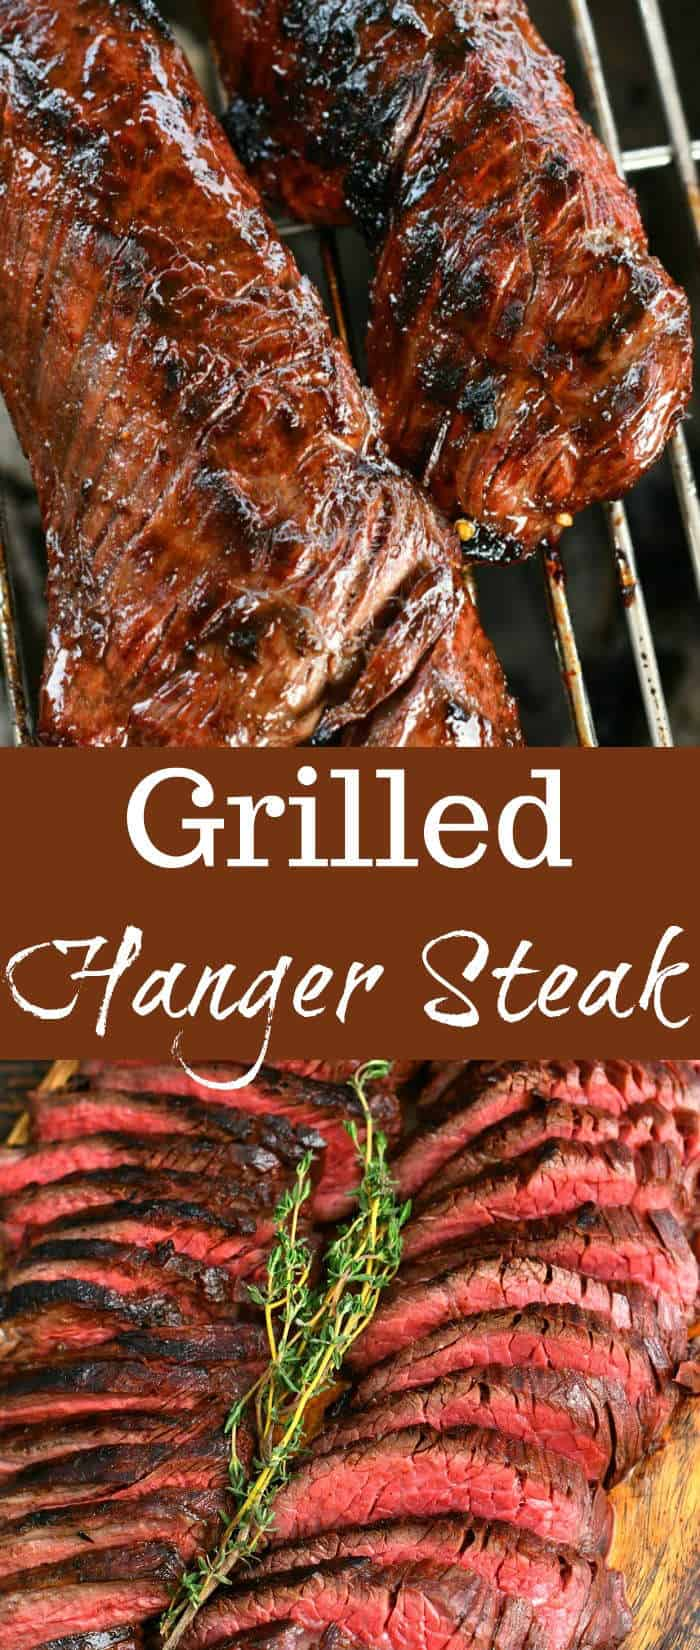 collage of two images of grilled steak and sliced steak with title words in the middle